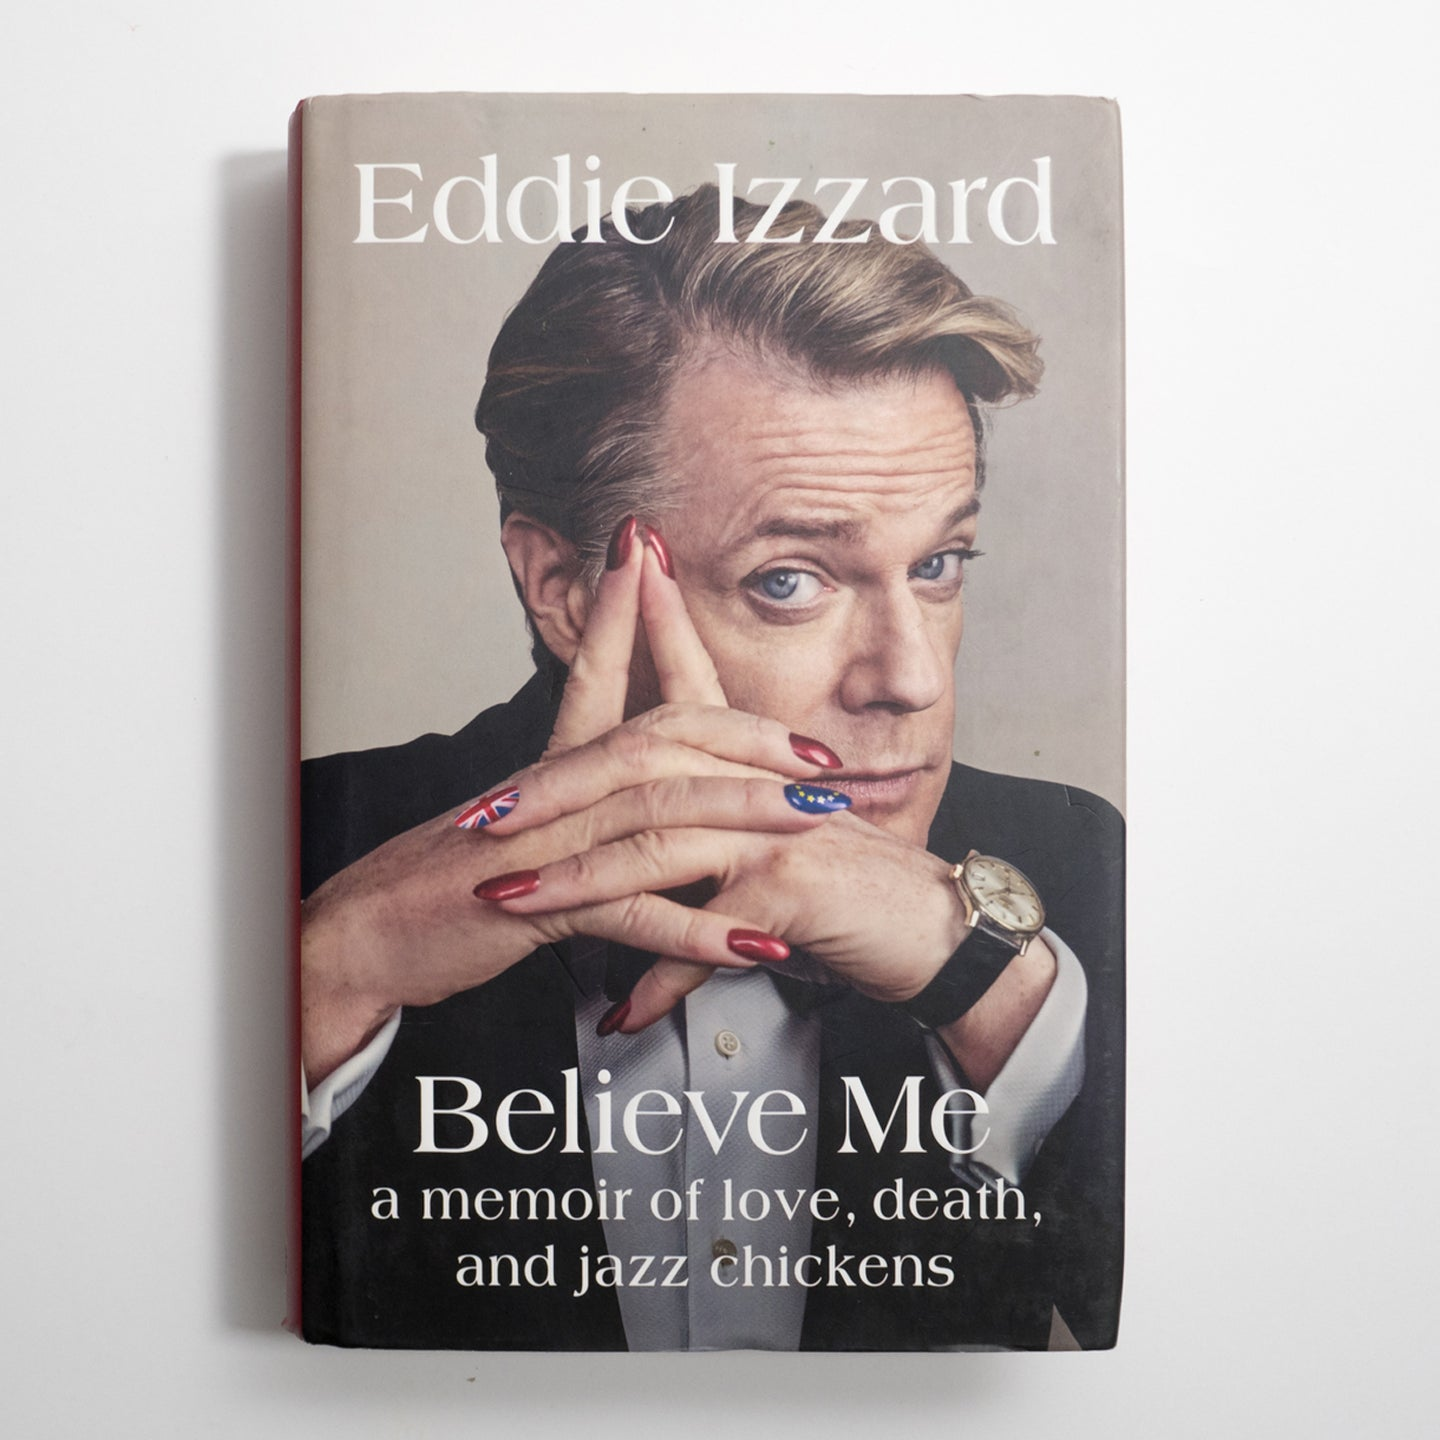 EDDIE IZZARD | Believe Me: A Memoir of Love, Death, and Jazz Chickens*